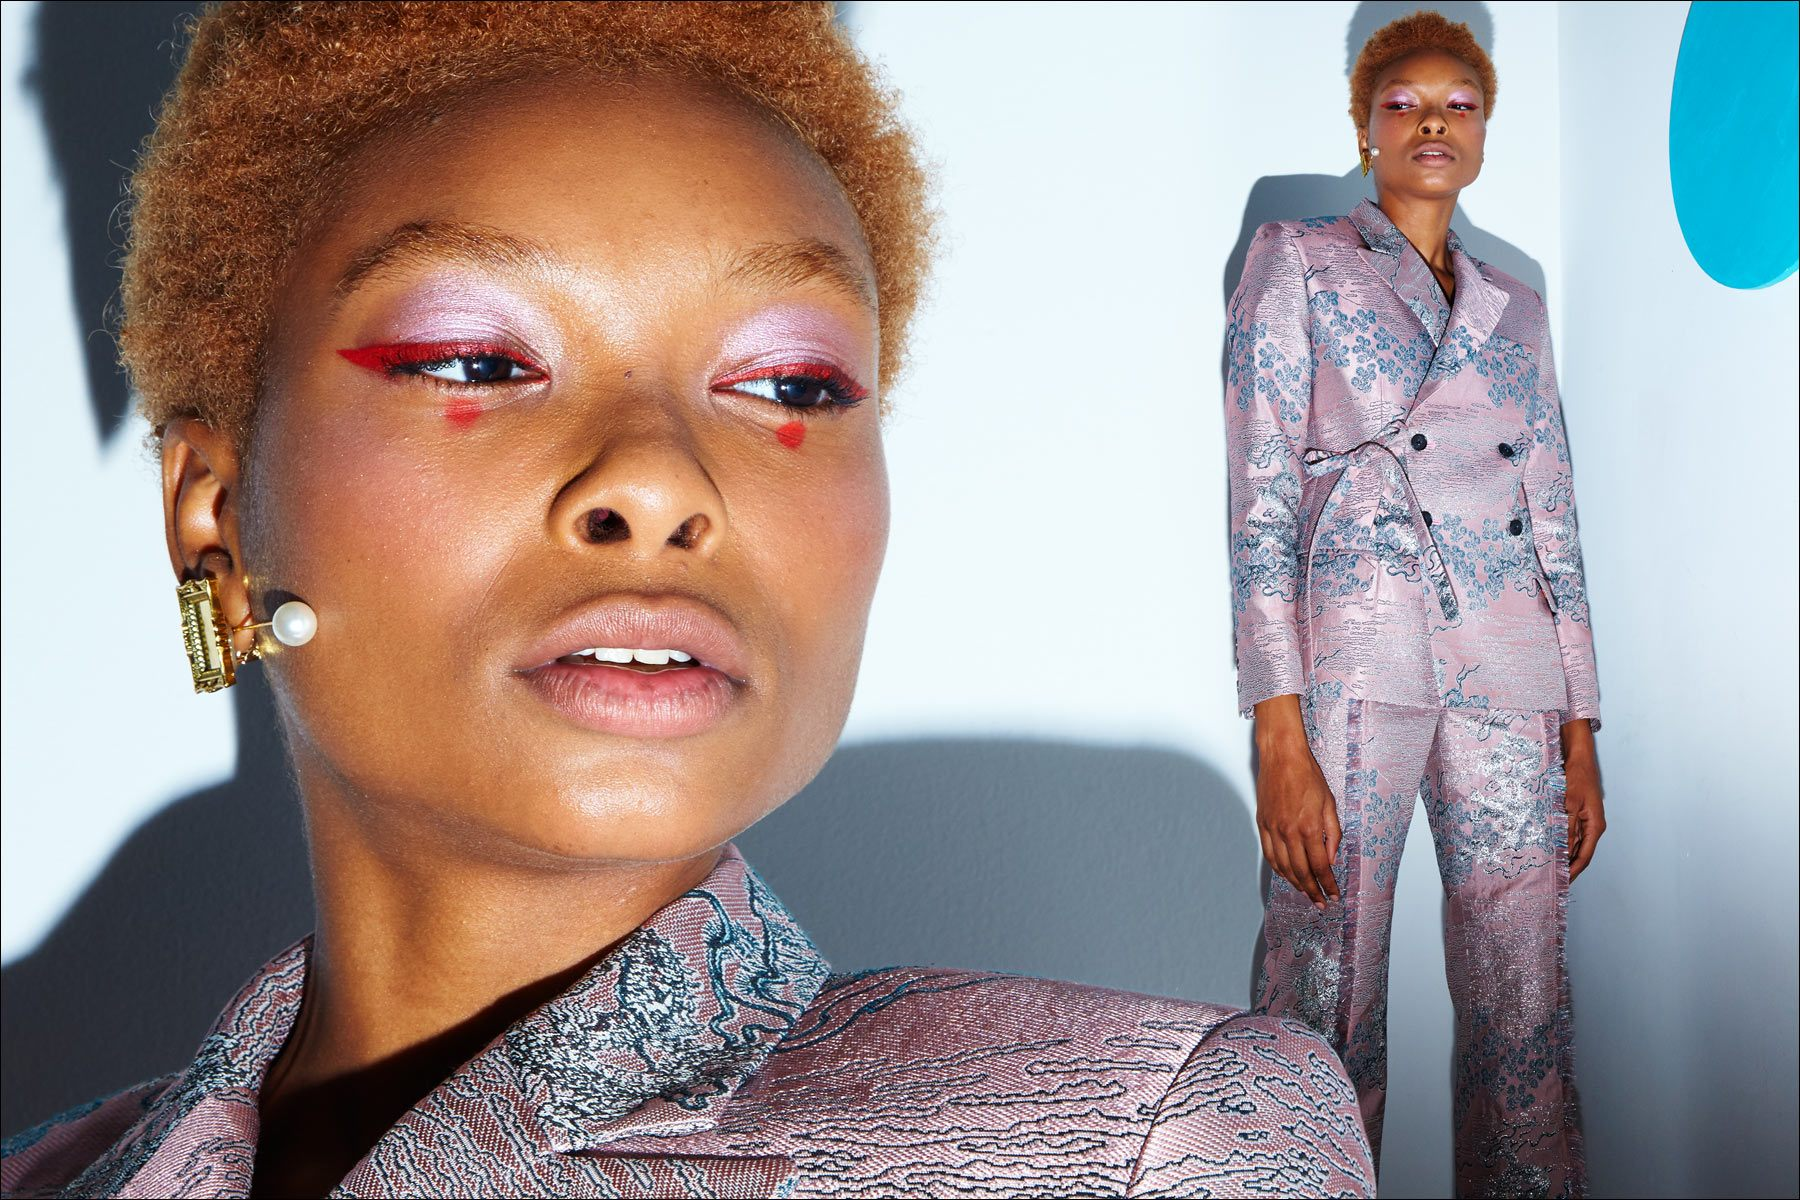 A model wears an avant-garde suit at Snow Xue Gao, for Spring/Summer 2018. Photography by Alexander Thompson for Ponyboy magazine NY.